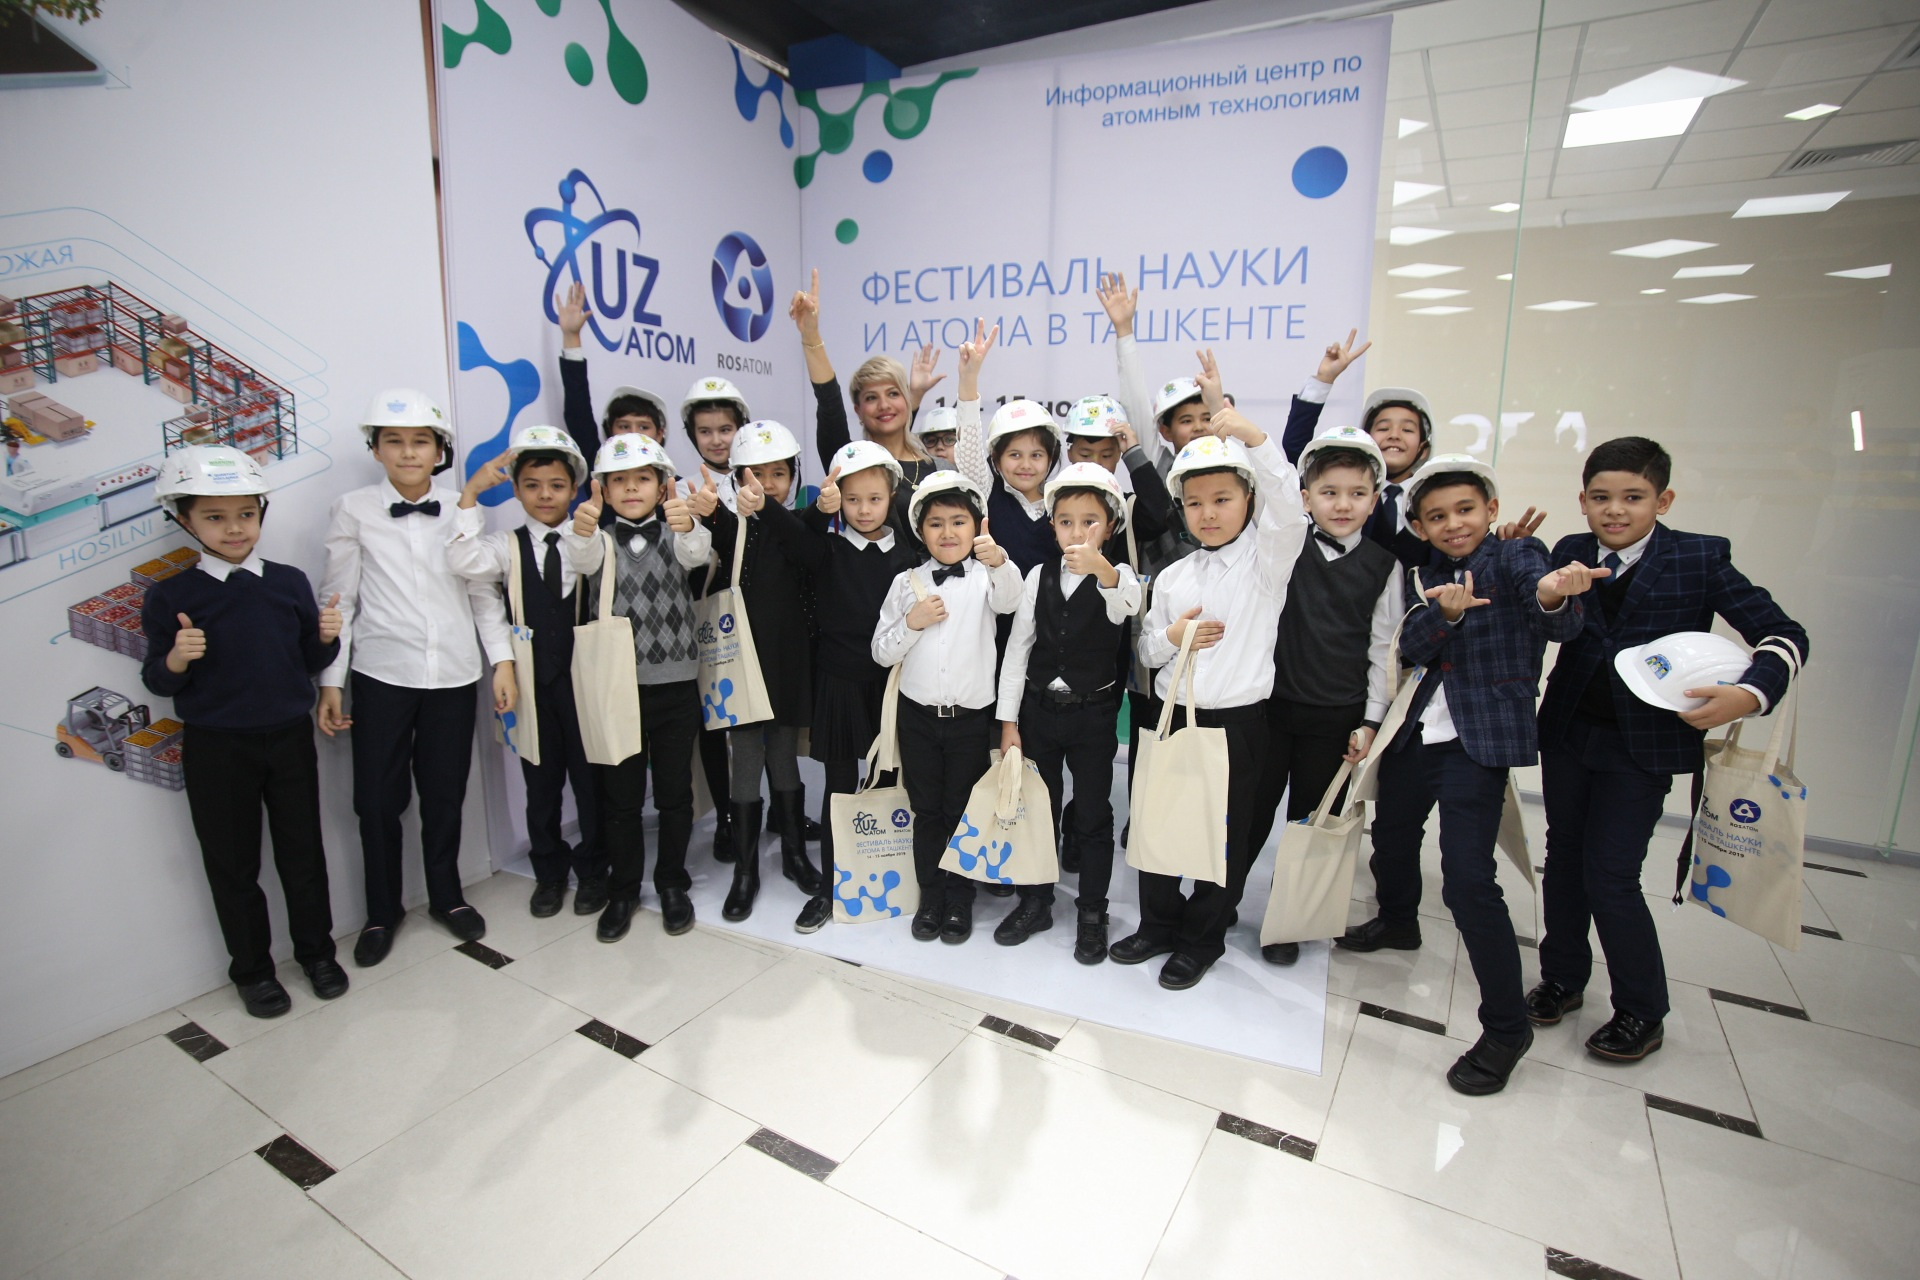 First Festival of Science and Atom in Tashkent